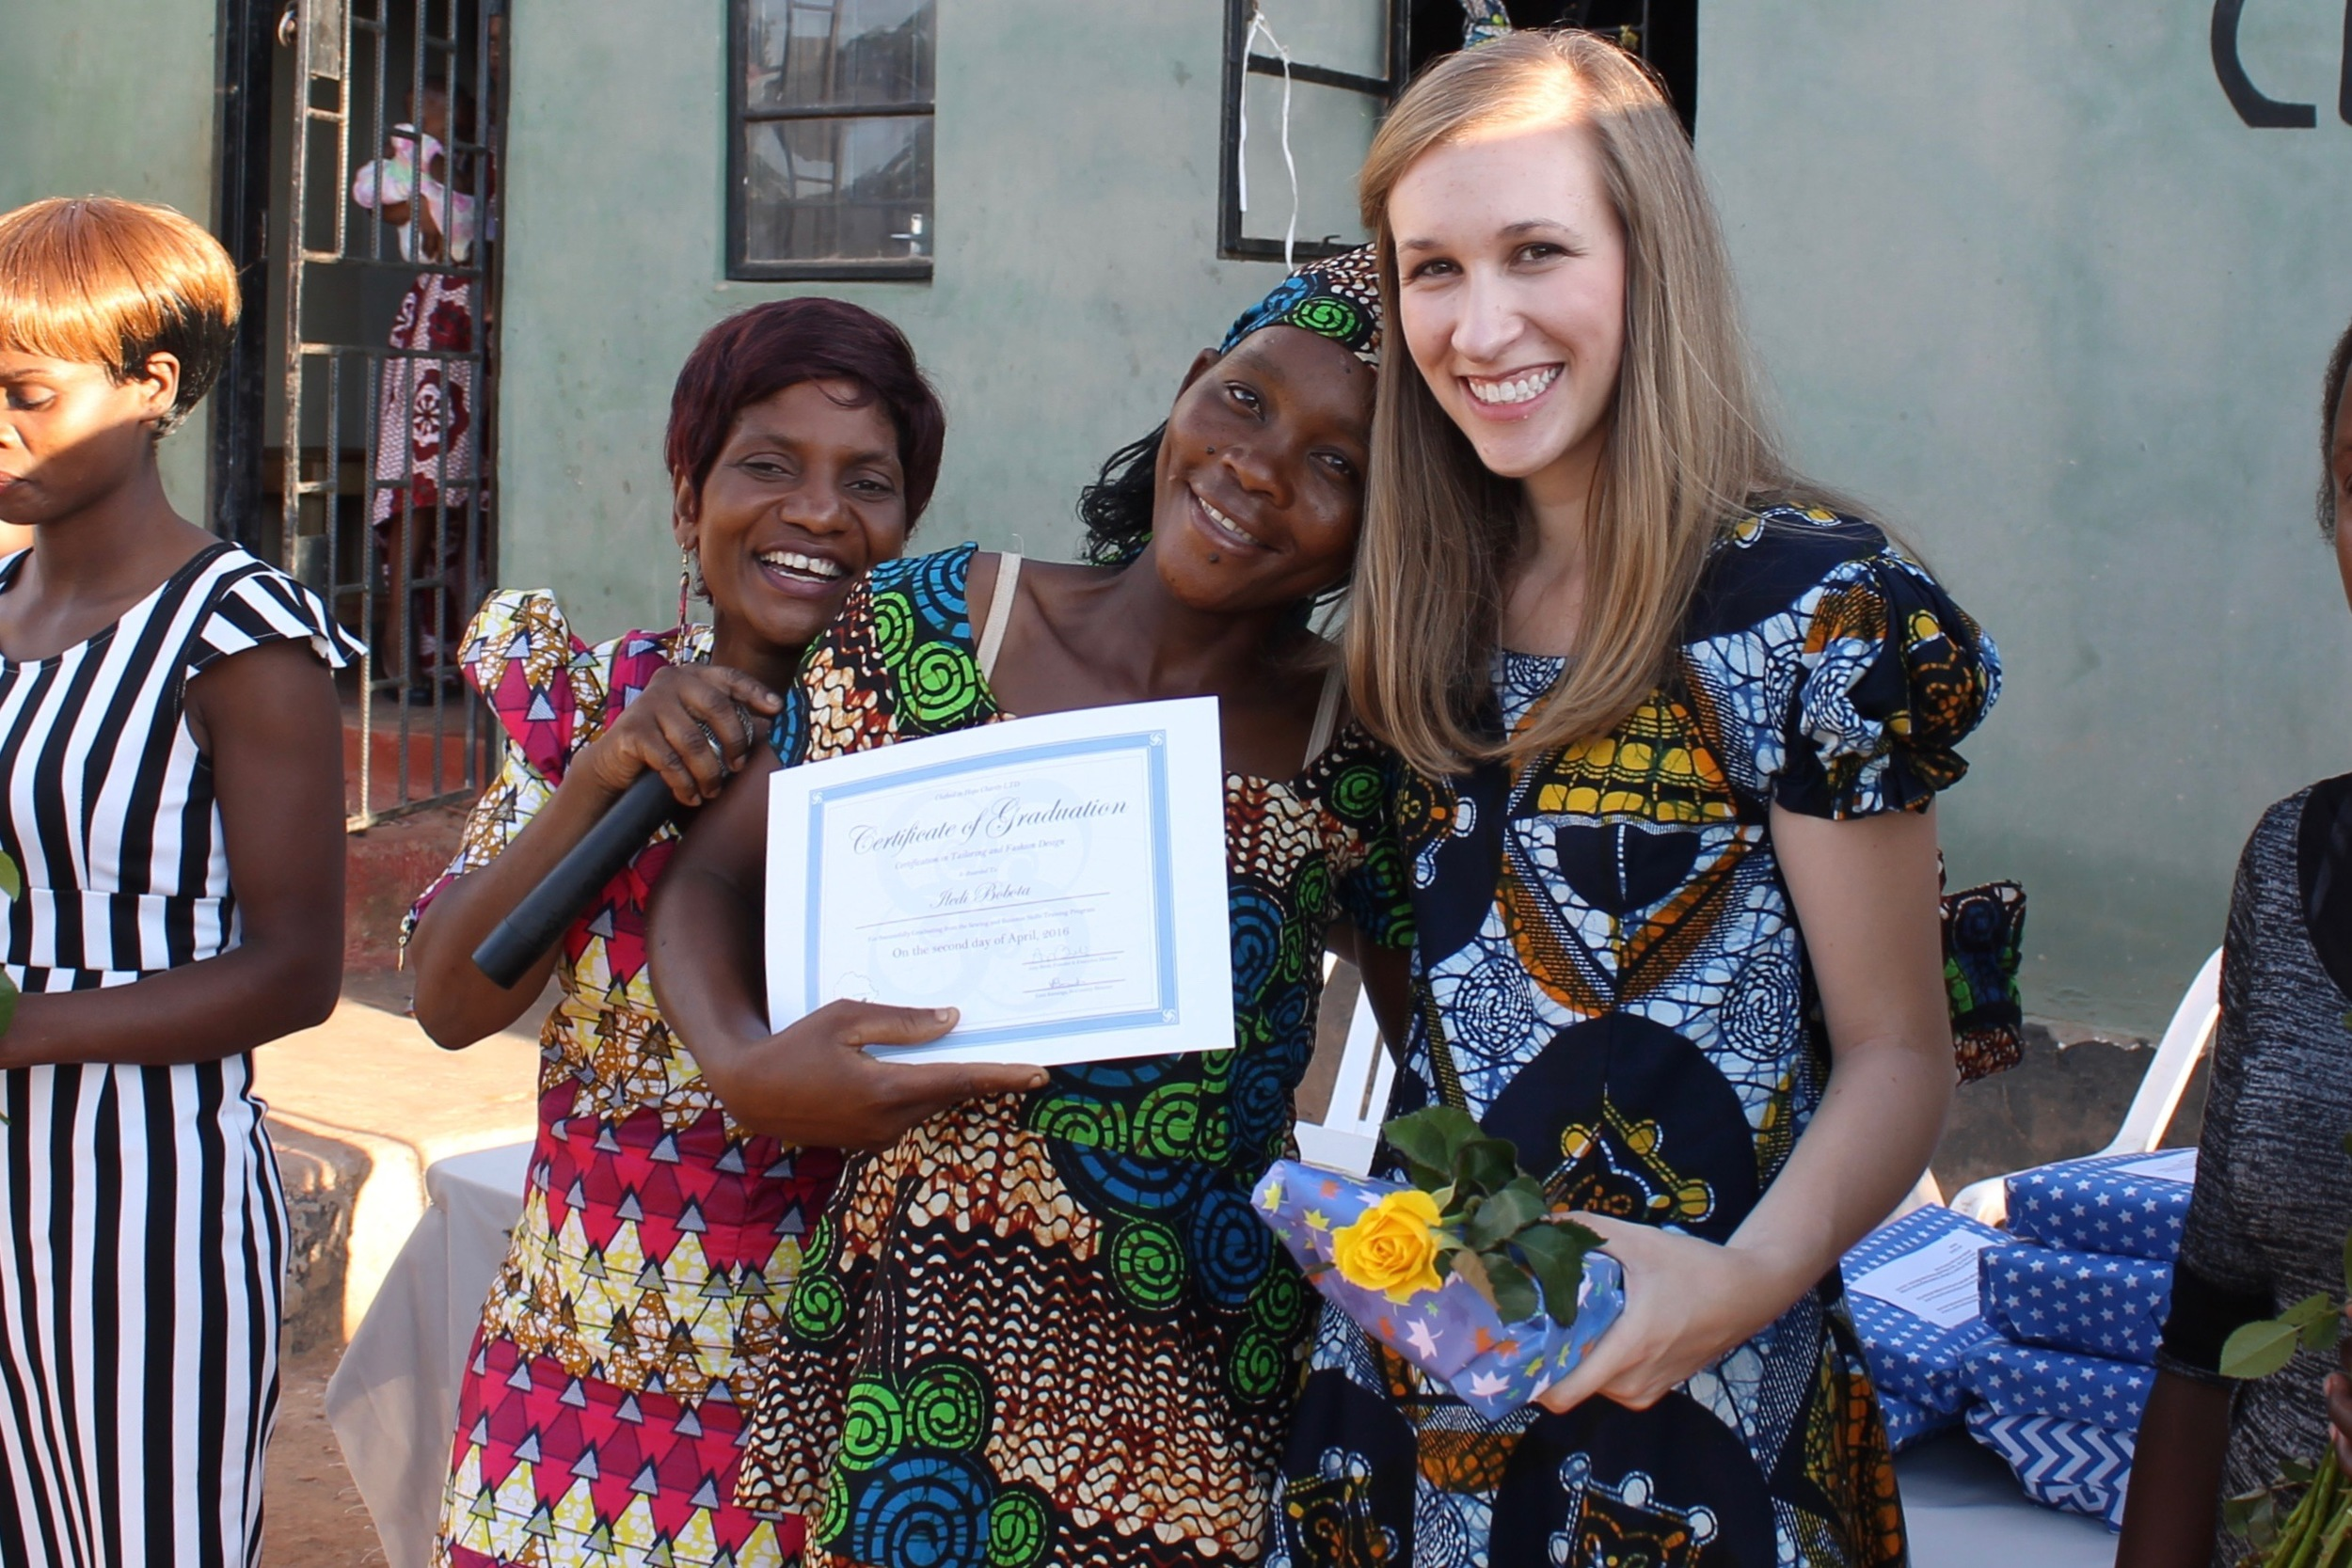 In-Country Director Elina, Muchochoma Village Graduate Iledi, and Founder Amy